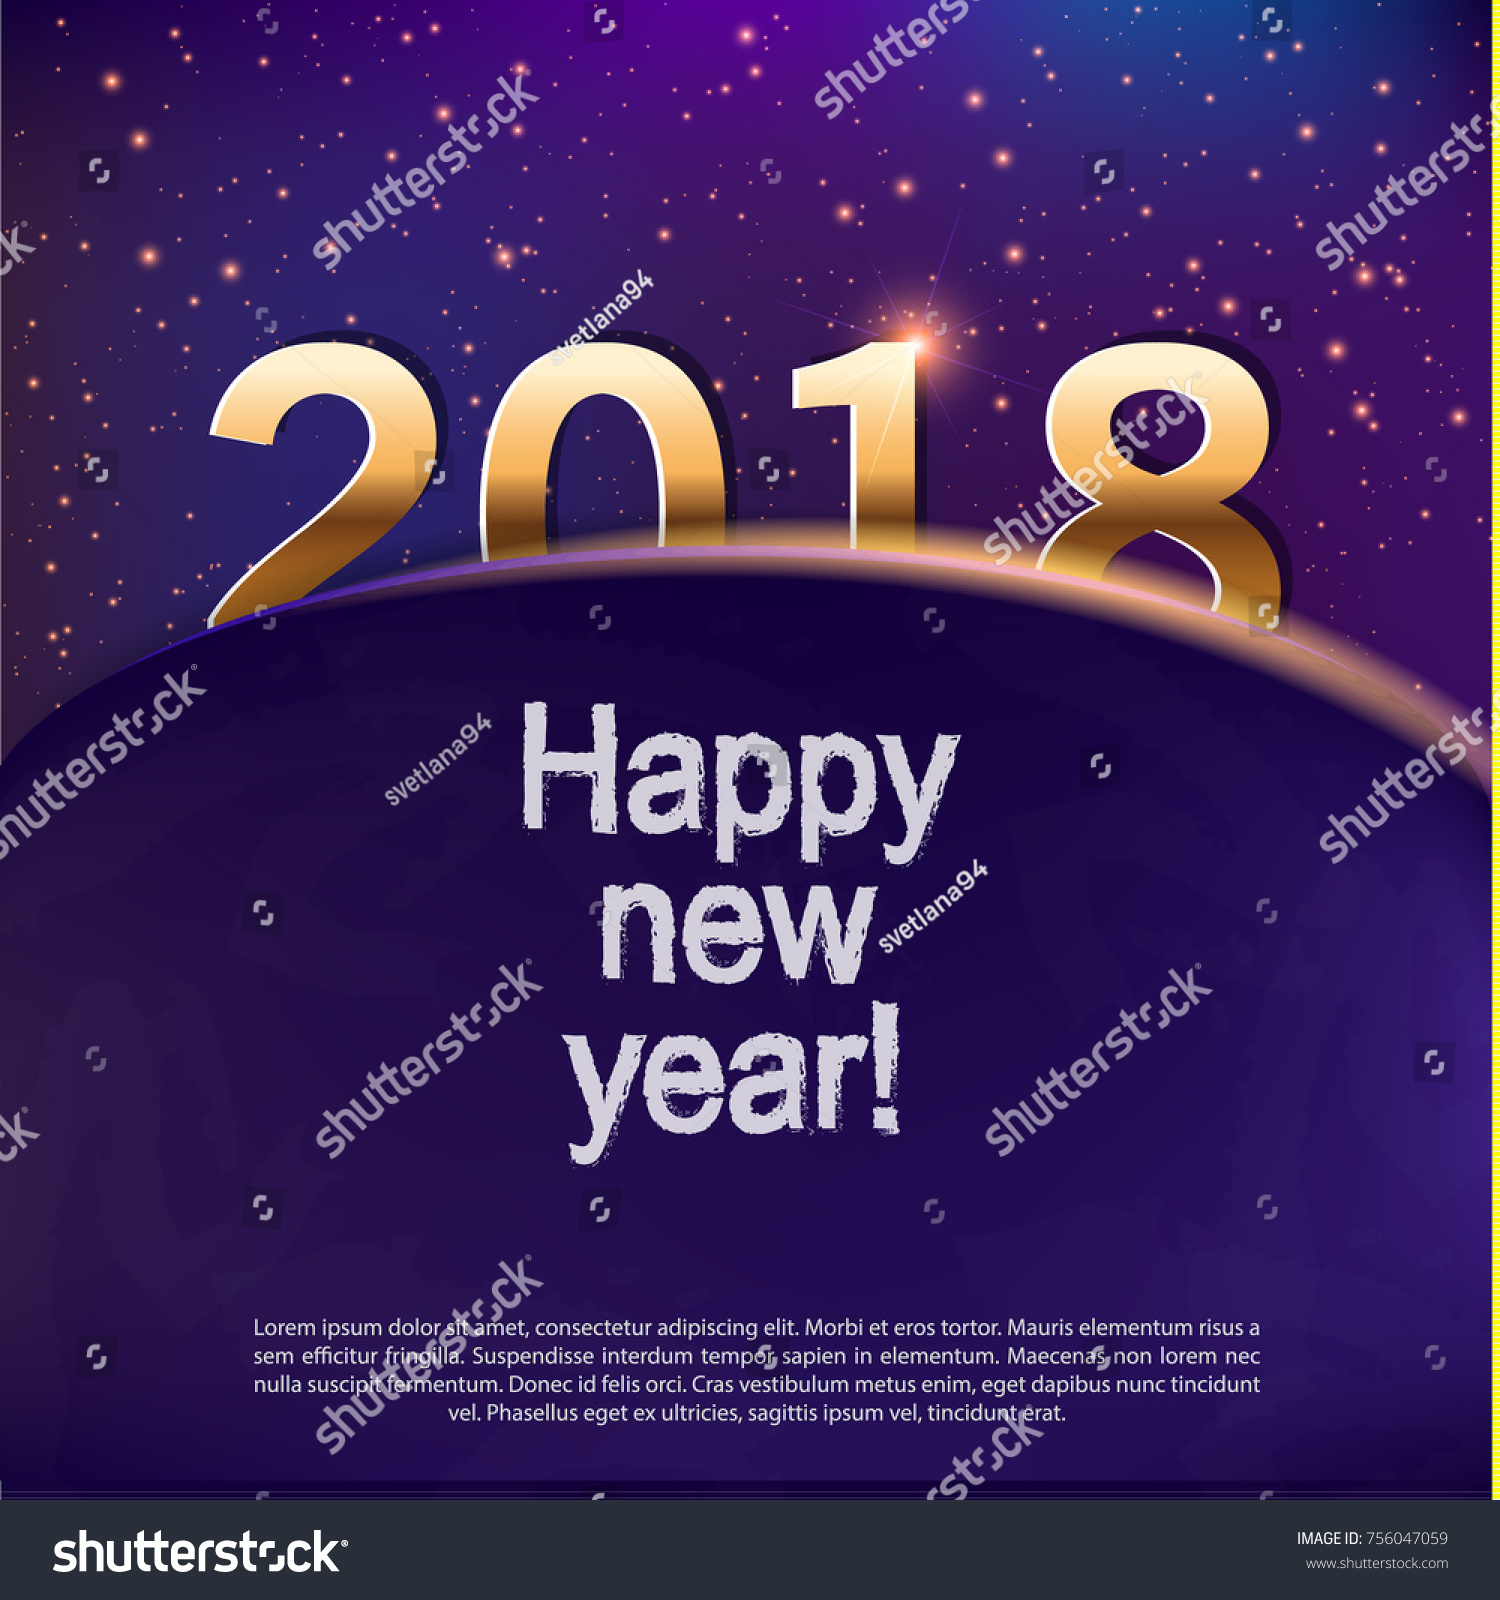 happy new year 2018template for cards and greetingschristmas celebration gold